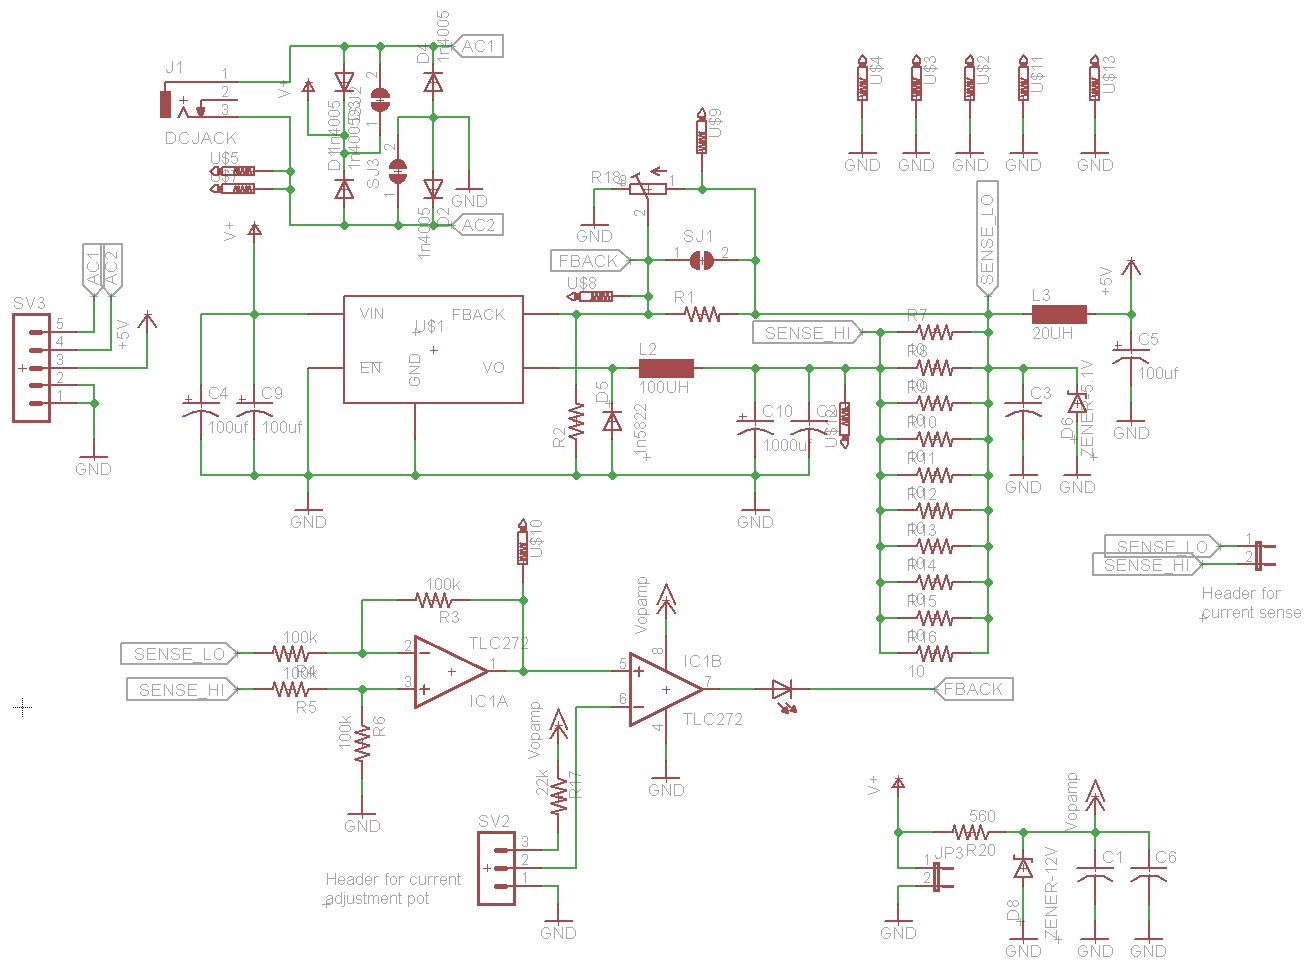 Rotary Power Supply Wiring Diagram Just Another Blog Computer Schematic Library Rh 66 Mac Happen De Diagrams Basics